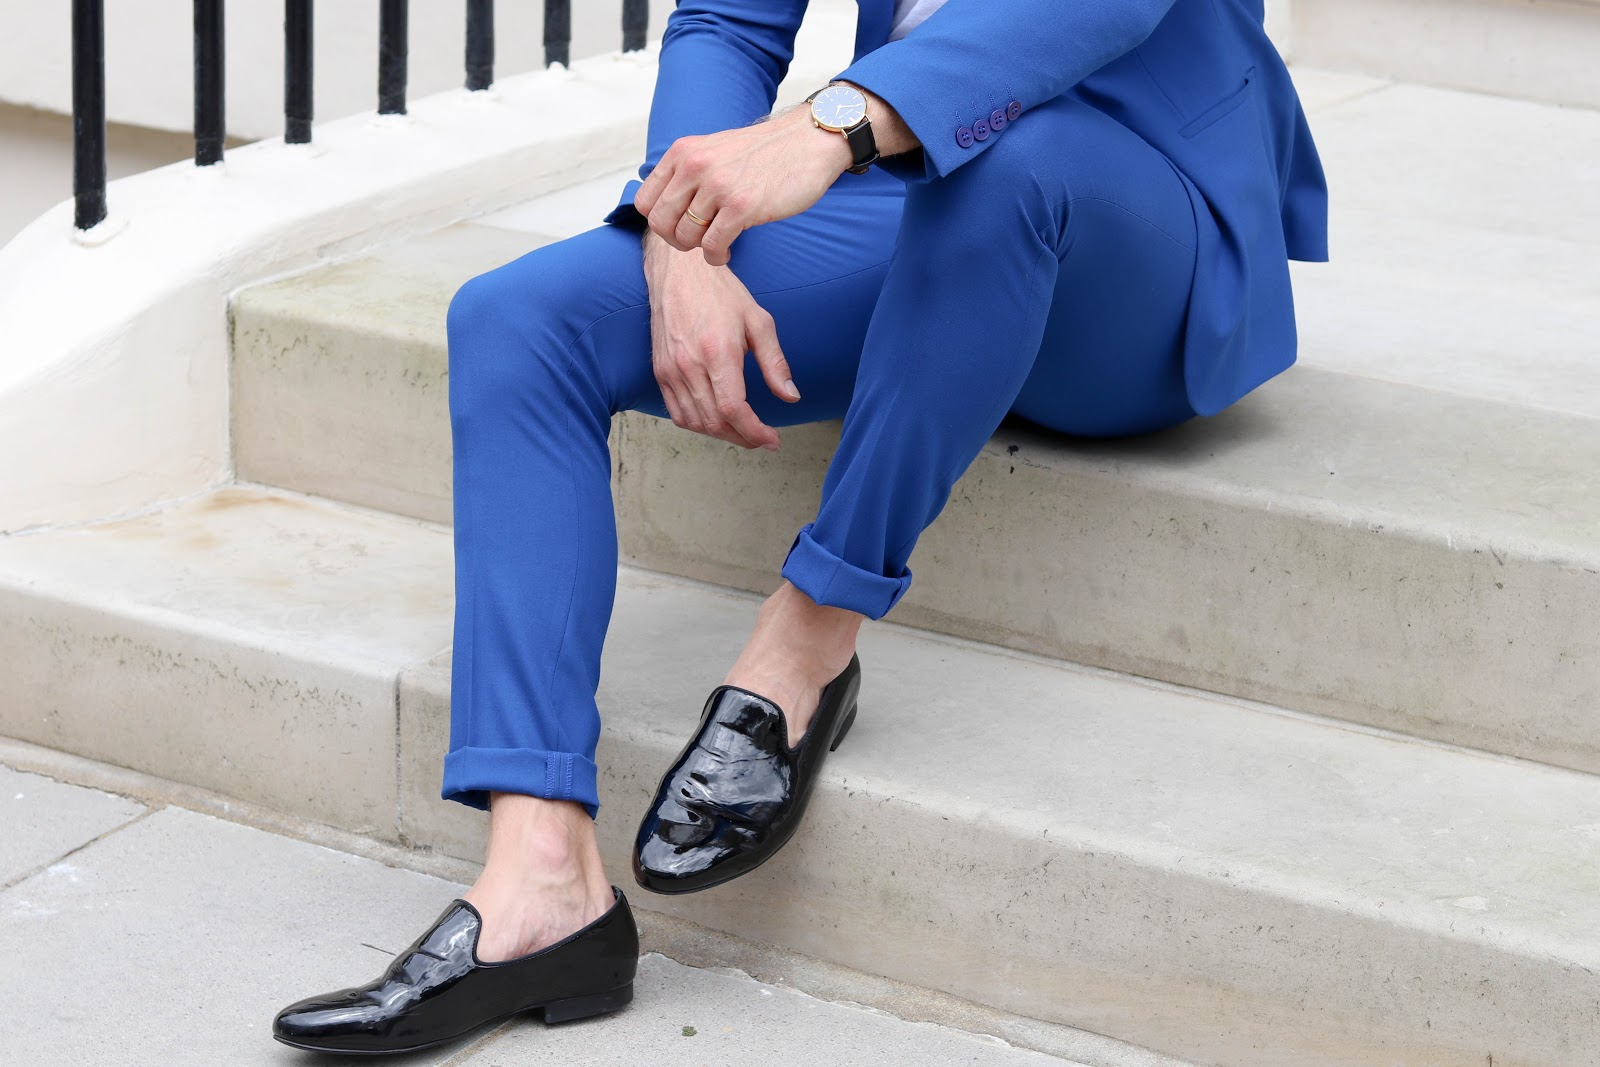 ASOS Blue Suit Zara Loafers Knightsbridge